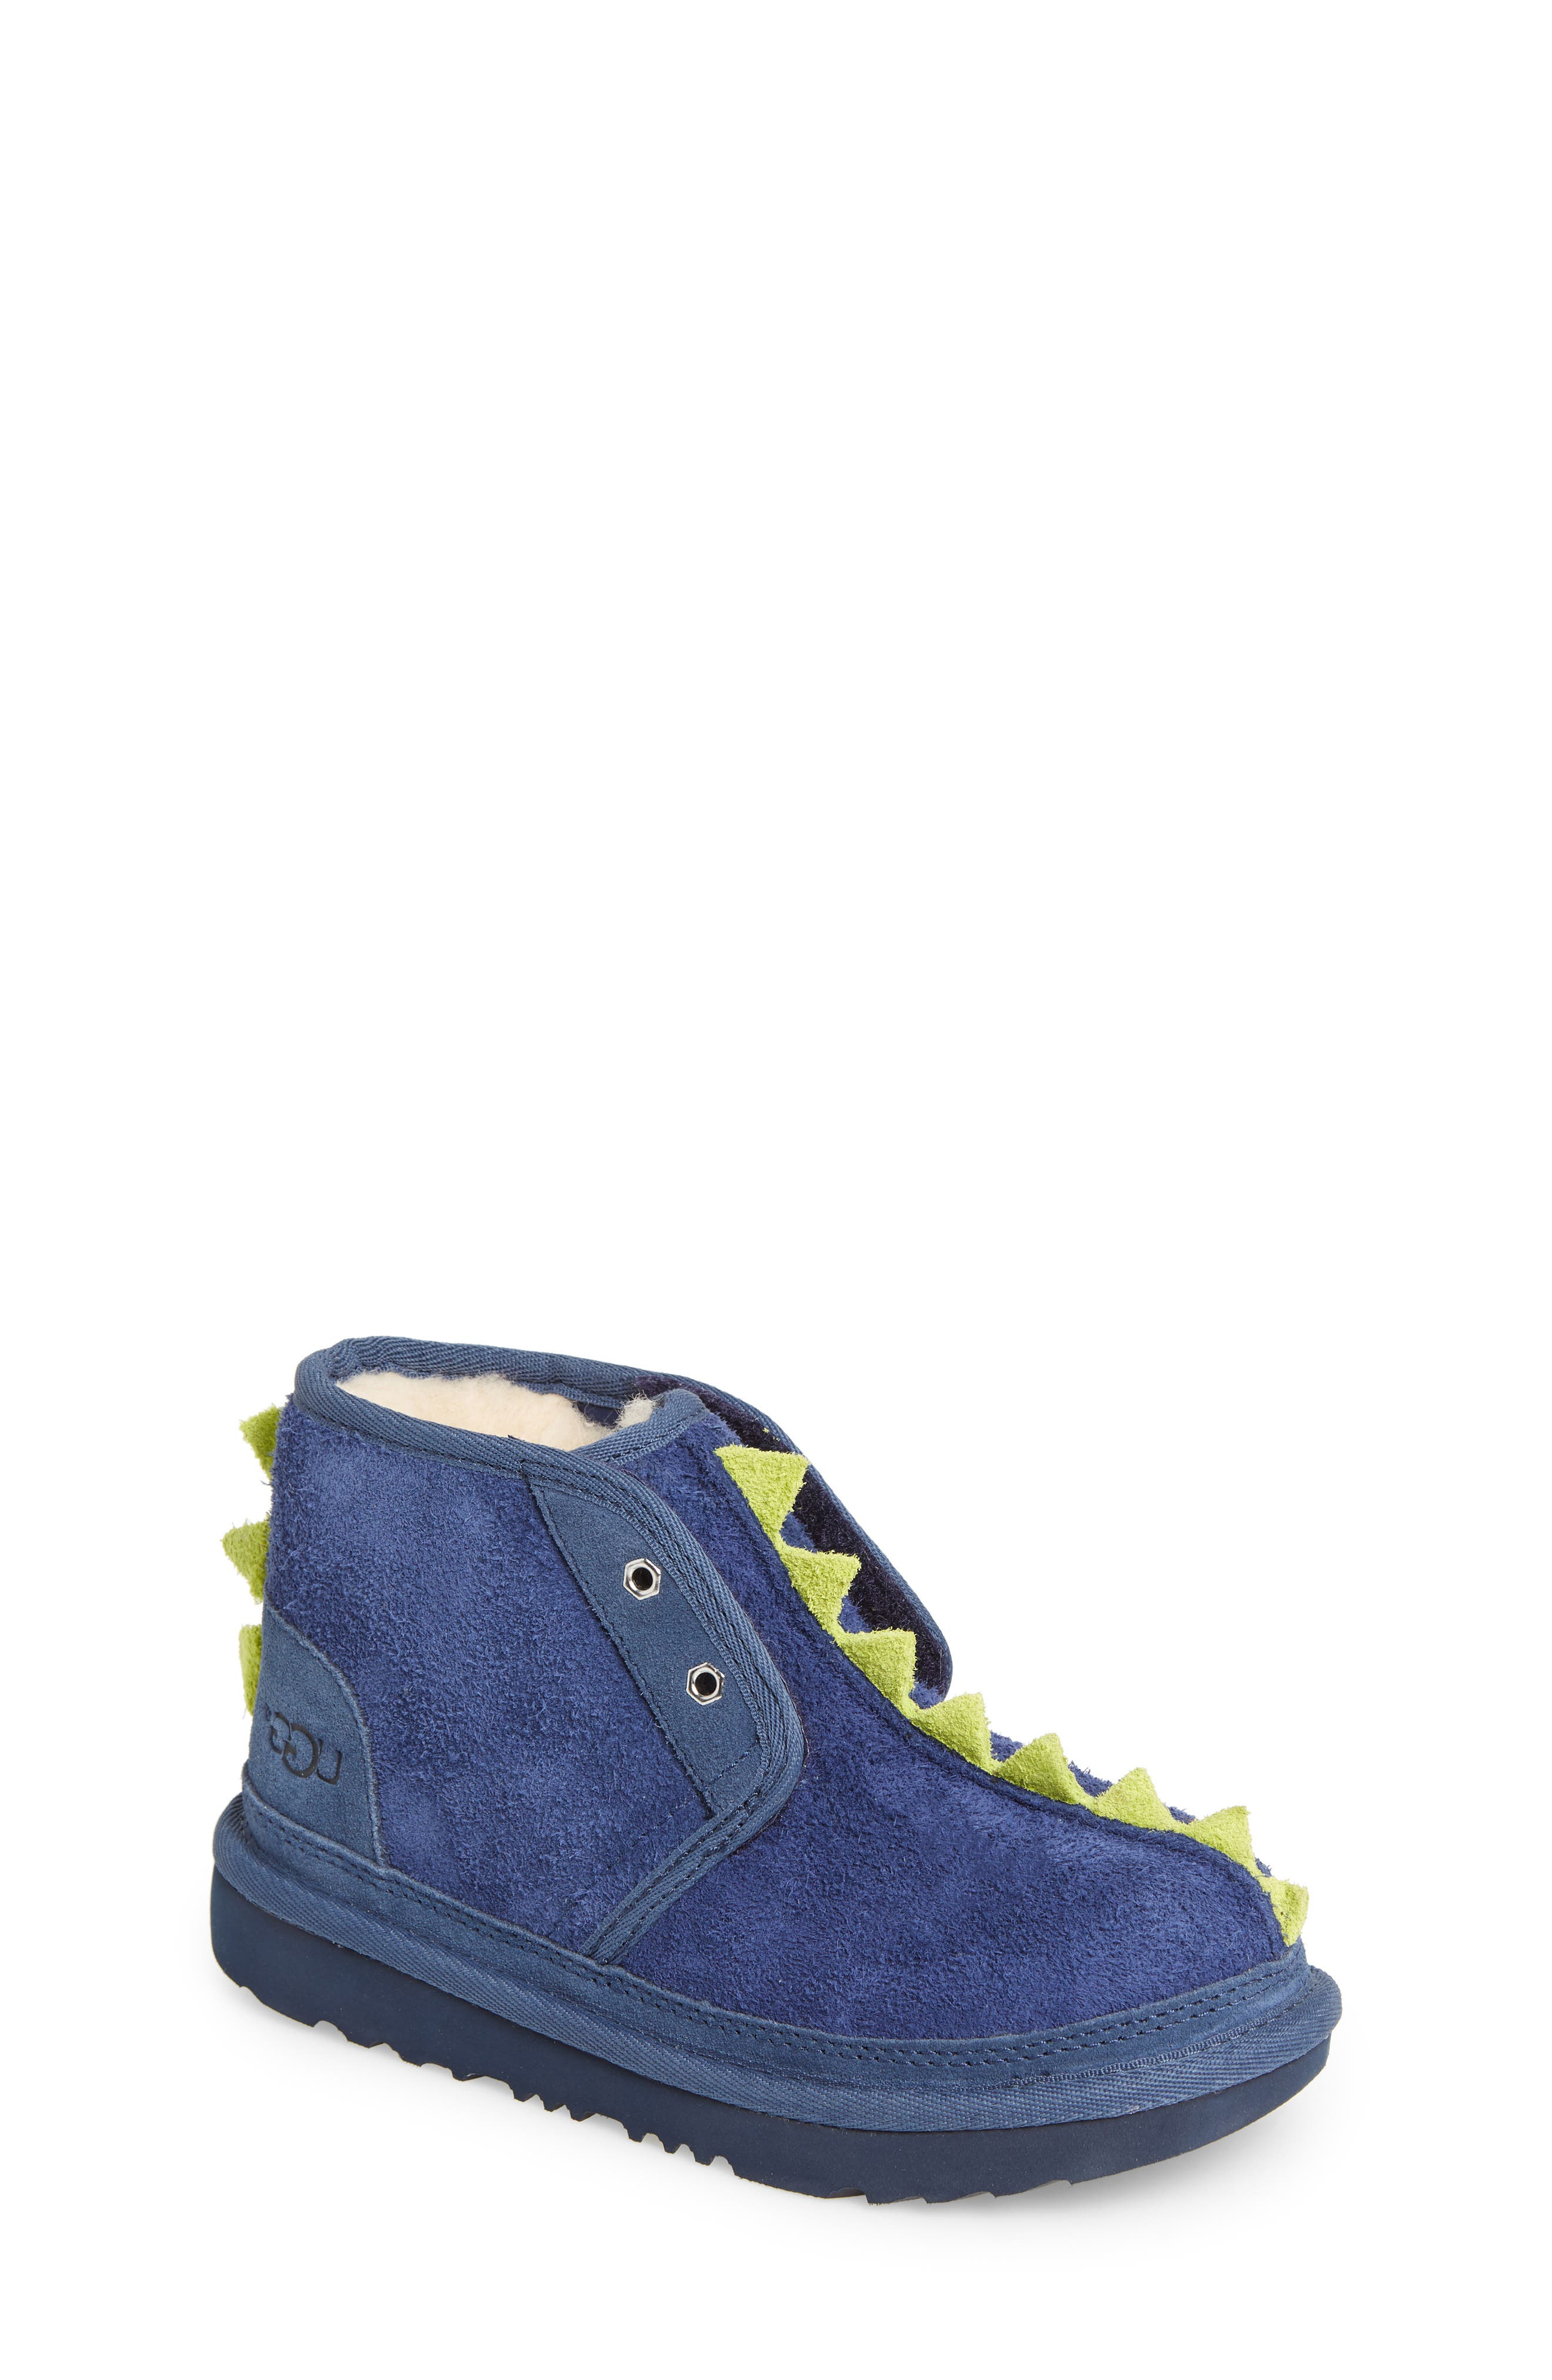 Dydo Neumel Genuine Shearling Lined Boot,                             Main thumbnail 1, color,                             NAVY / BRIGHT CHARTREUSE